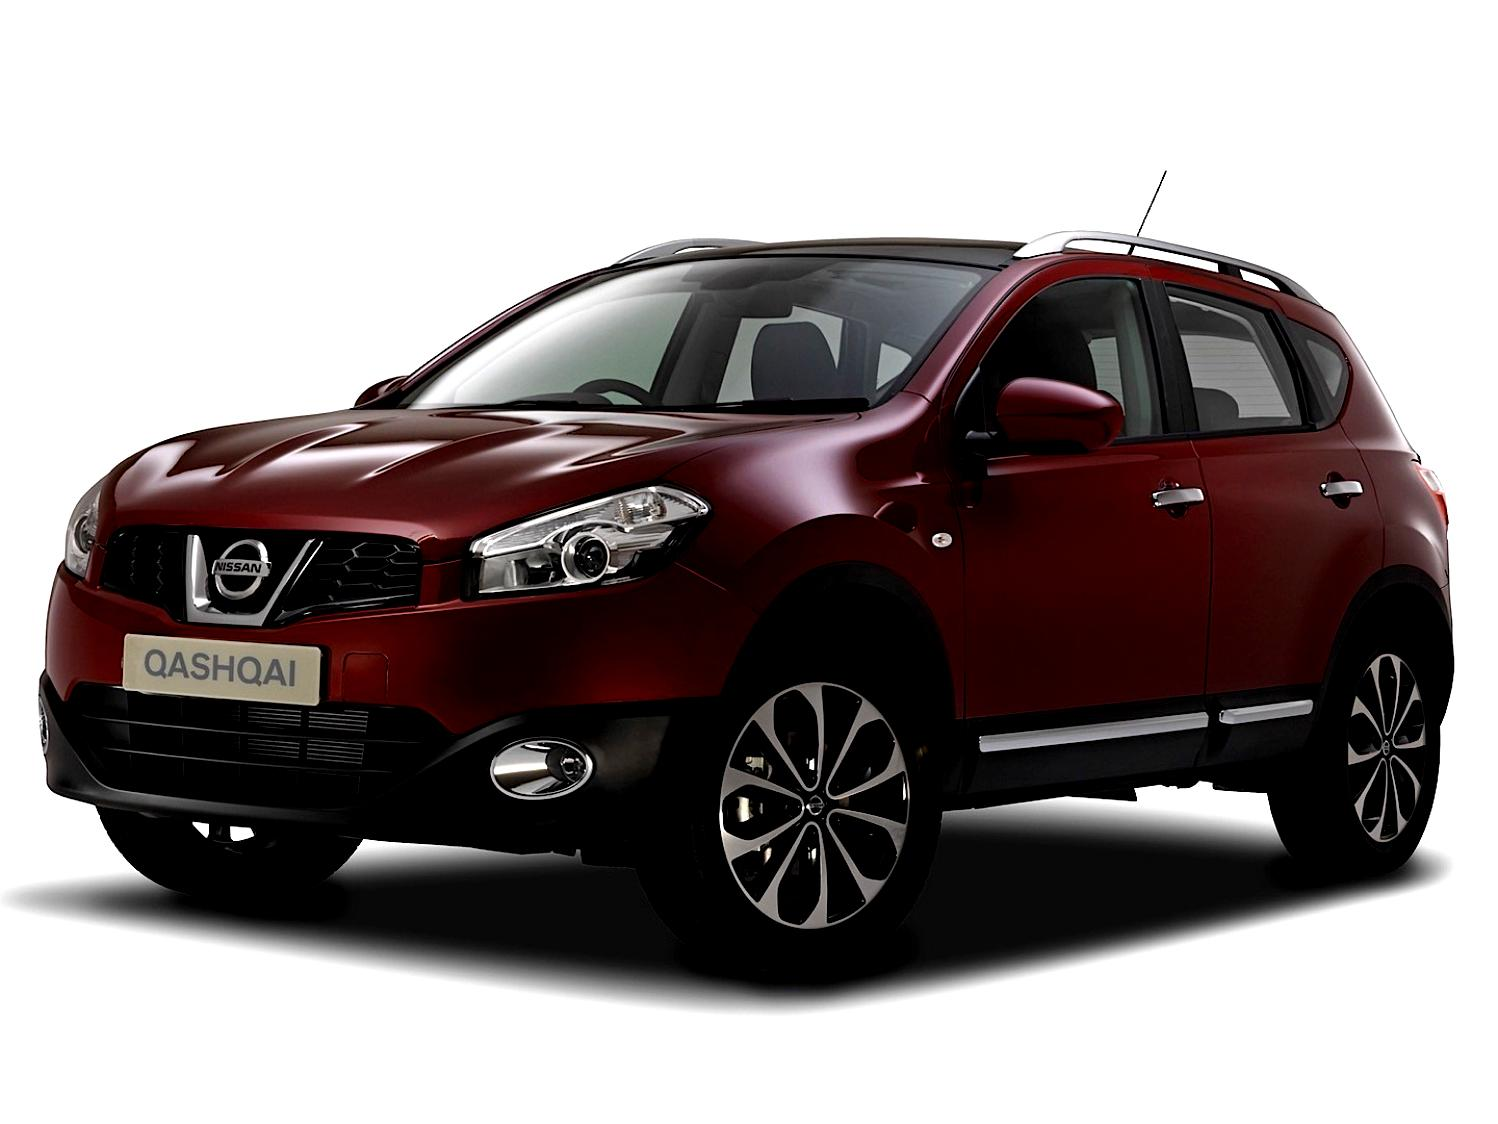 nissan qashqai 2010 on. Black Bedroom Furniture Sets. Home Design Ideas